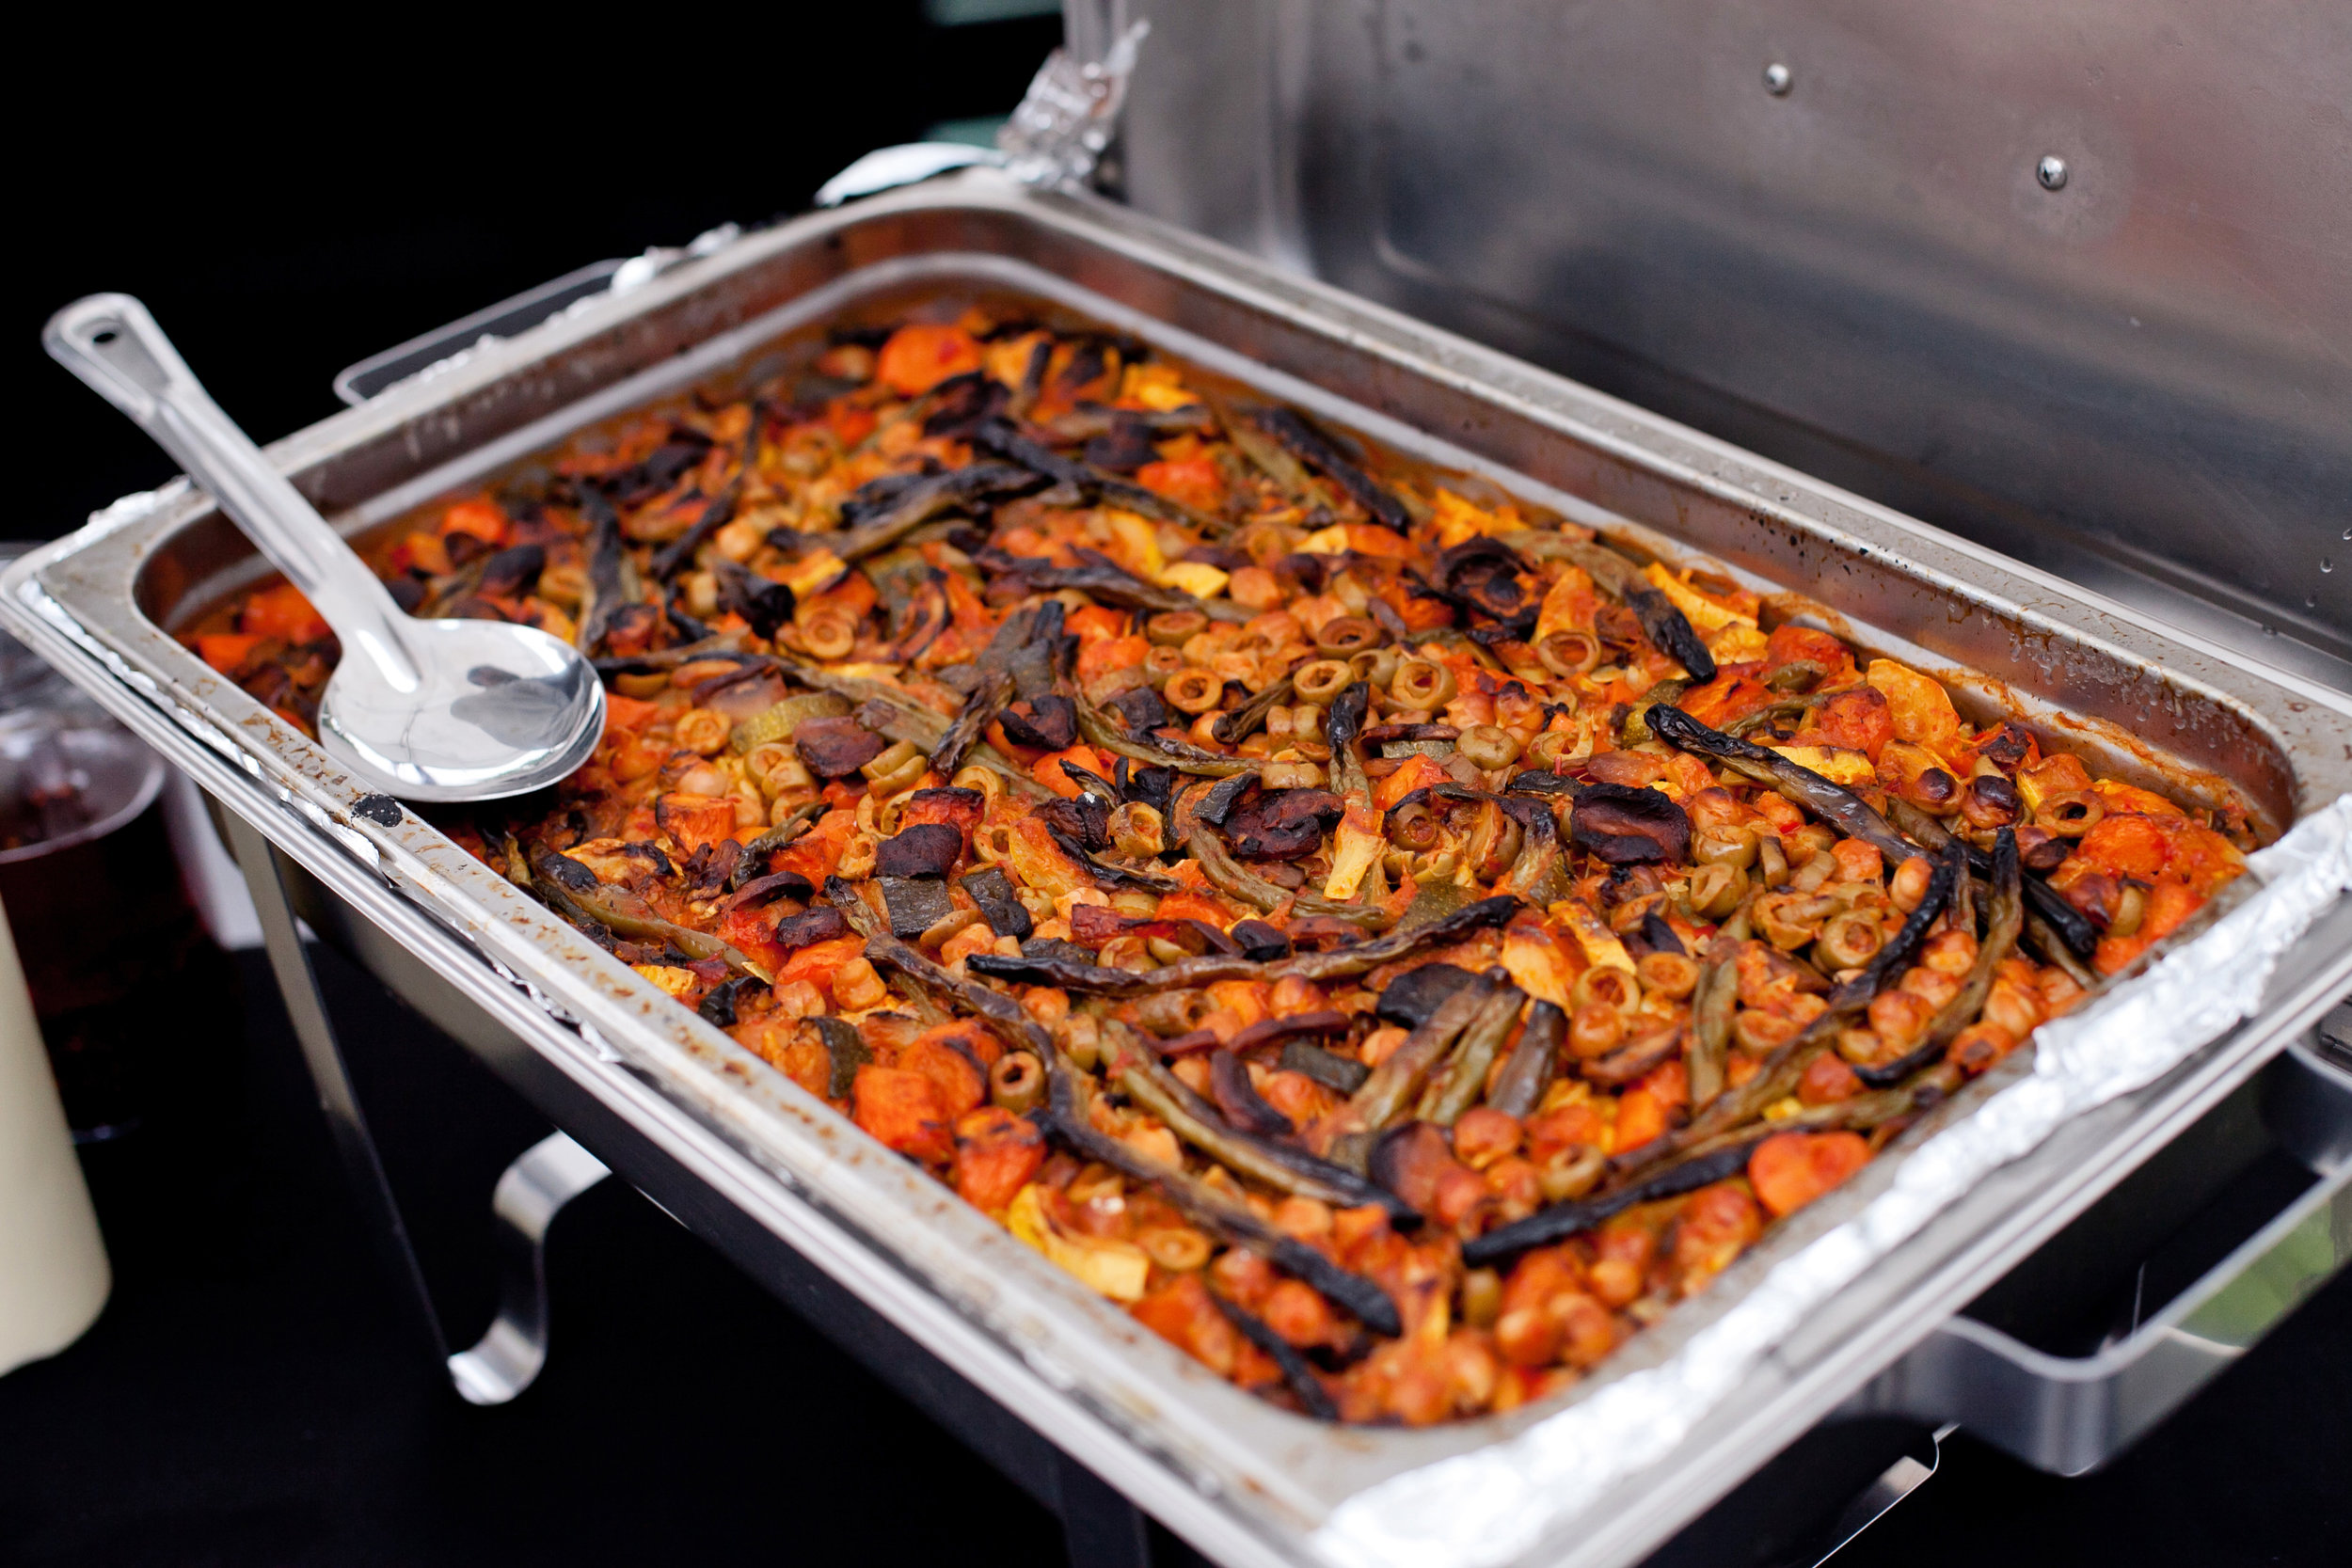 Here is the veggie paella version made off-site to prevent cross contamination for those with seafood allergies. Photo credit: Bethany Meister: Photographer